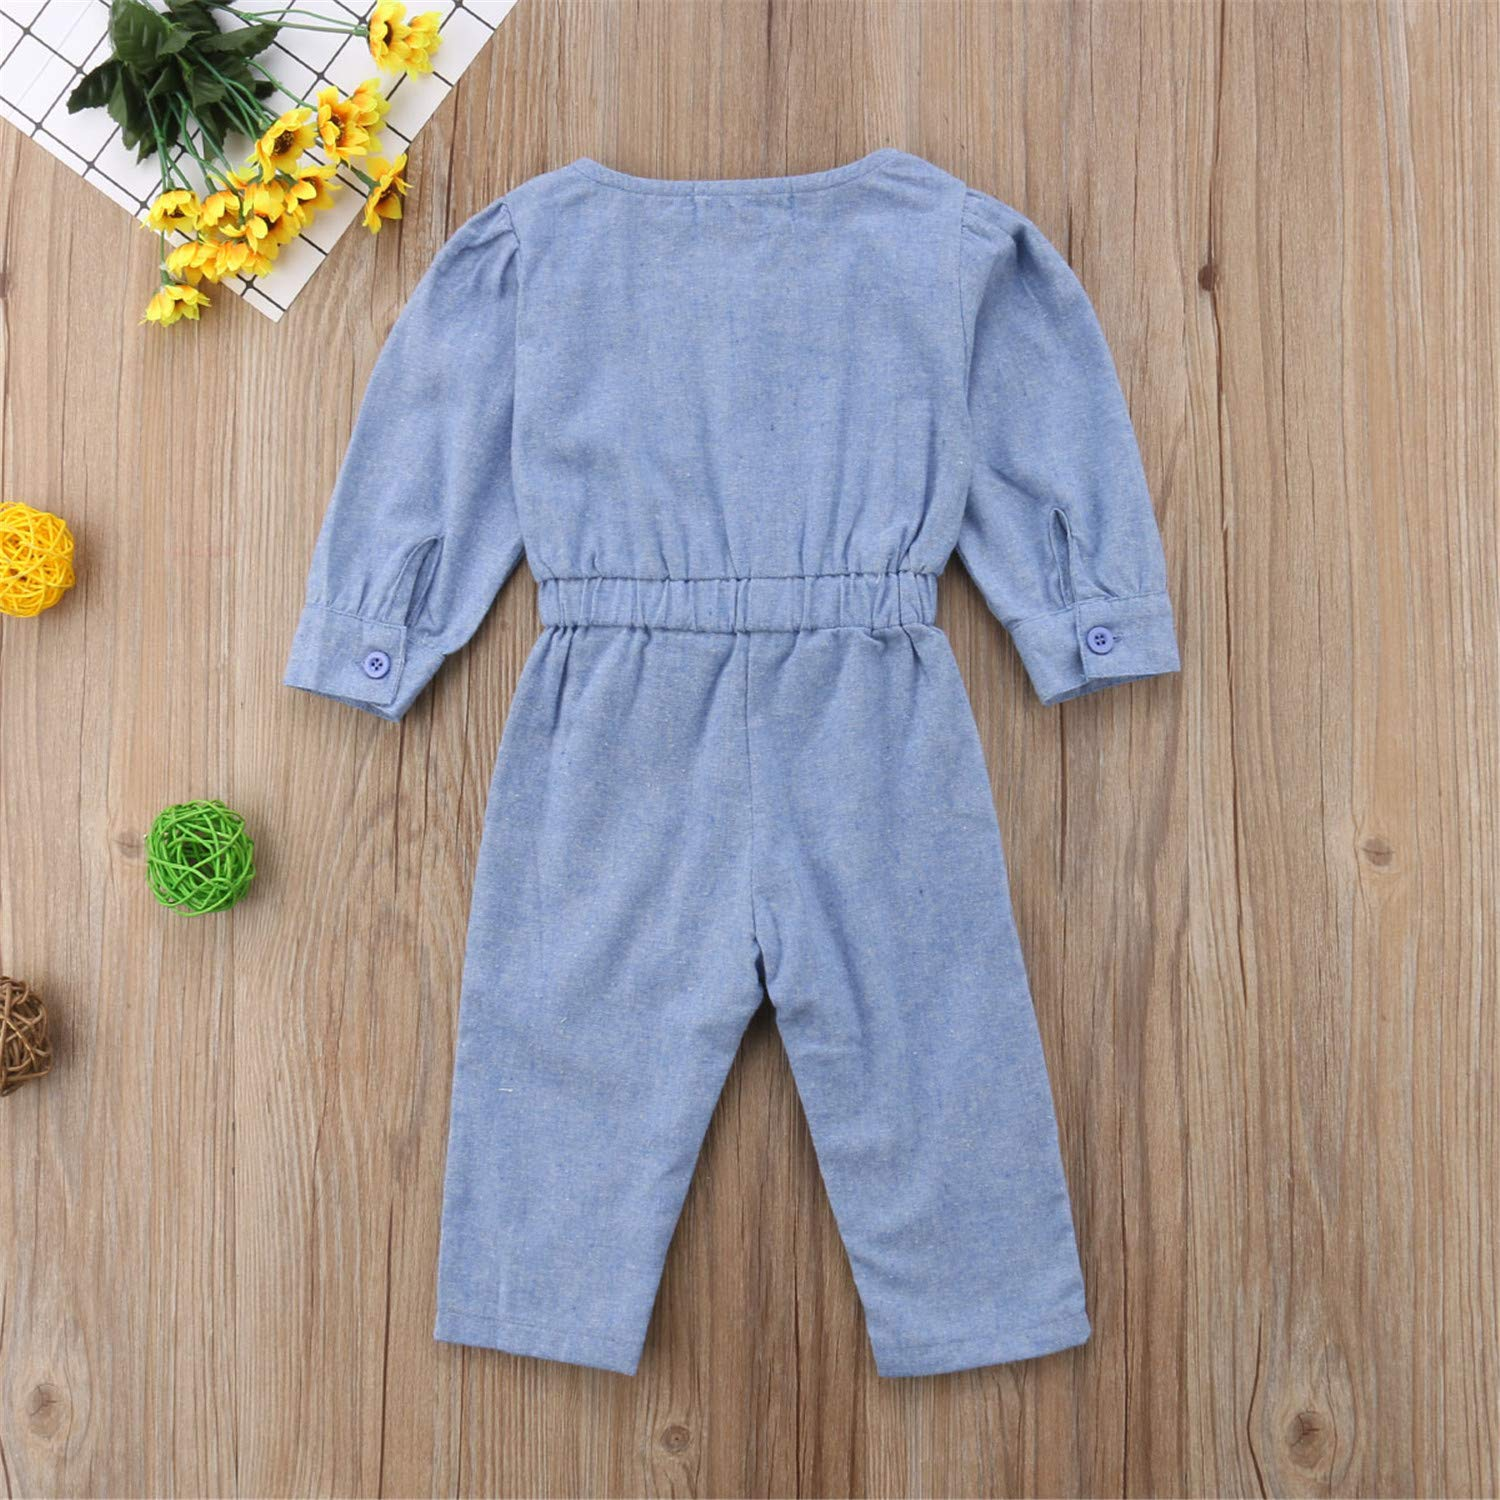 0-3Y Newborn Toddler Infant Girl Denim Clothes Lengthy Sleeve Soft Cotton Romper Jumpsuit Playsuit Outfits Princess or Queen Prince